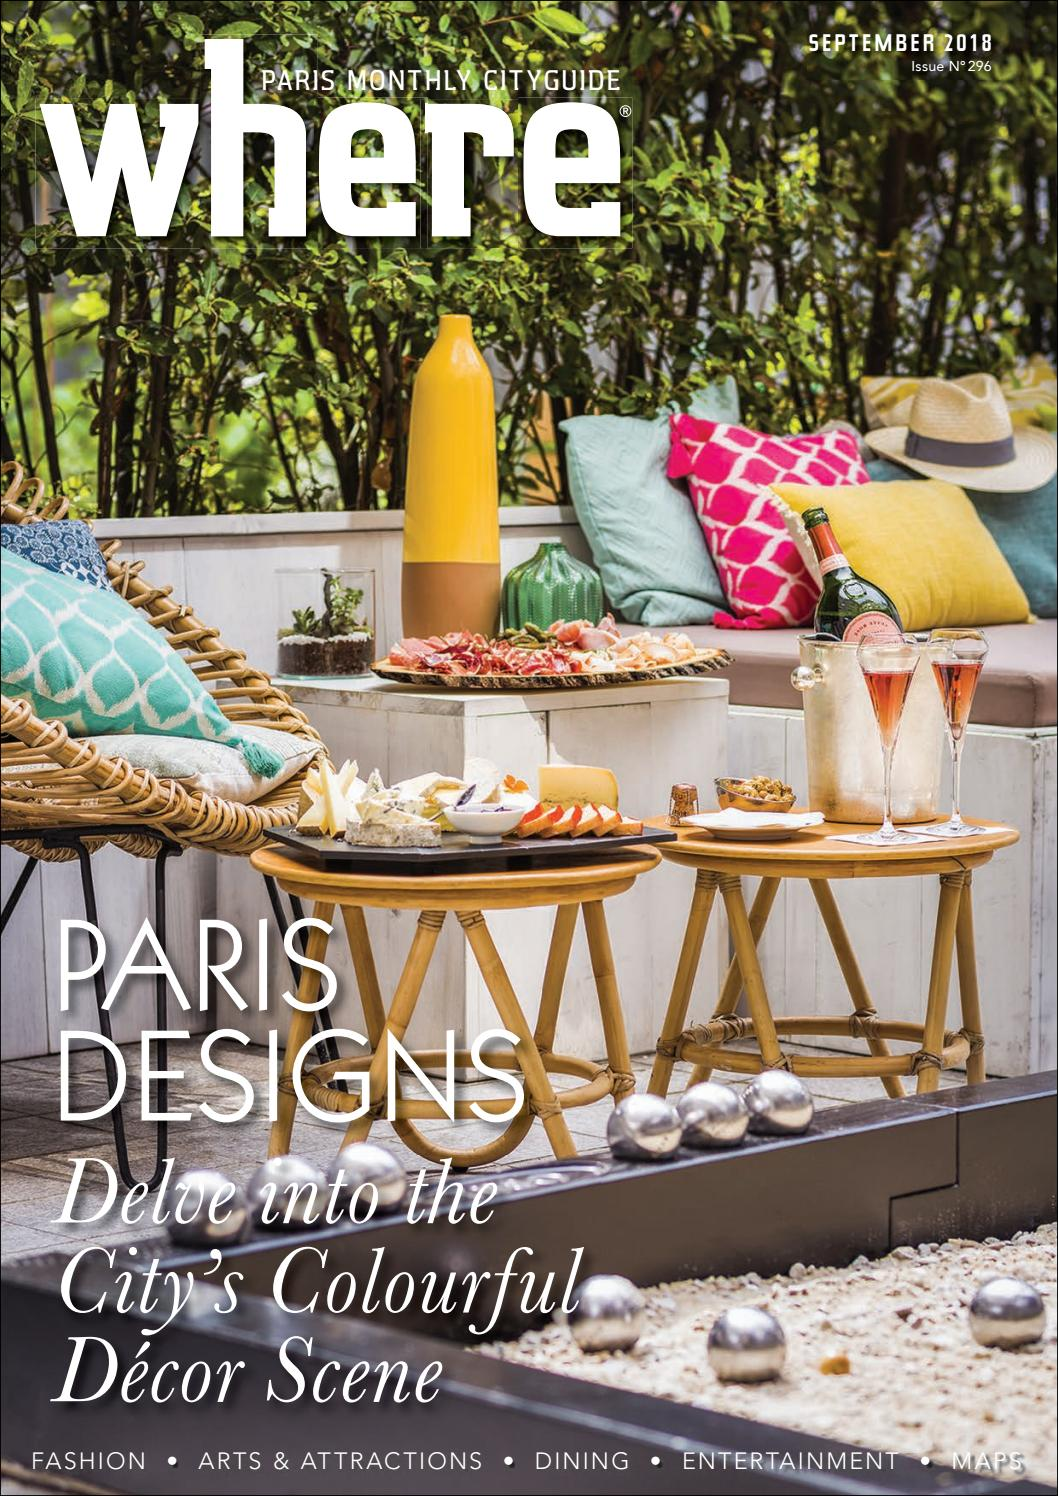 78 Boulevard Bourdon Neuilly Sur Seine where magazine paris sep 2018morris media network - issuu